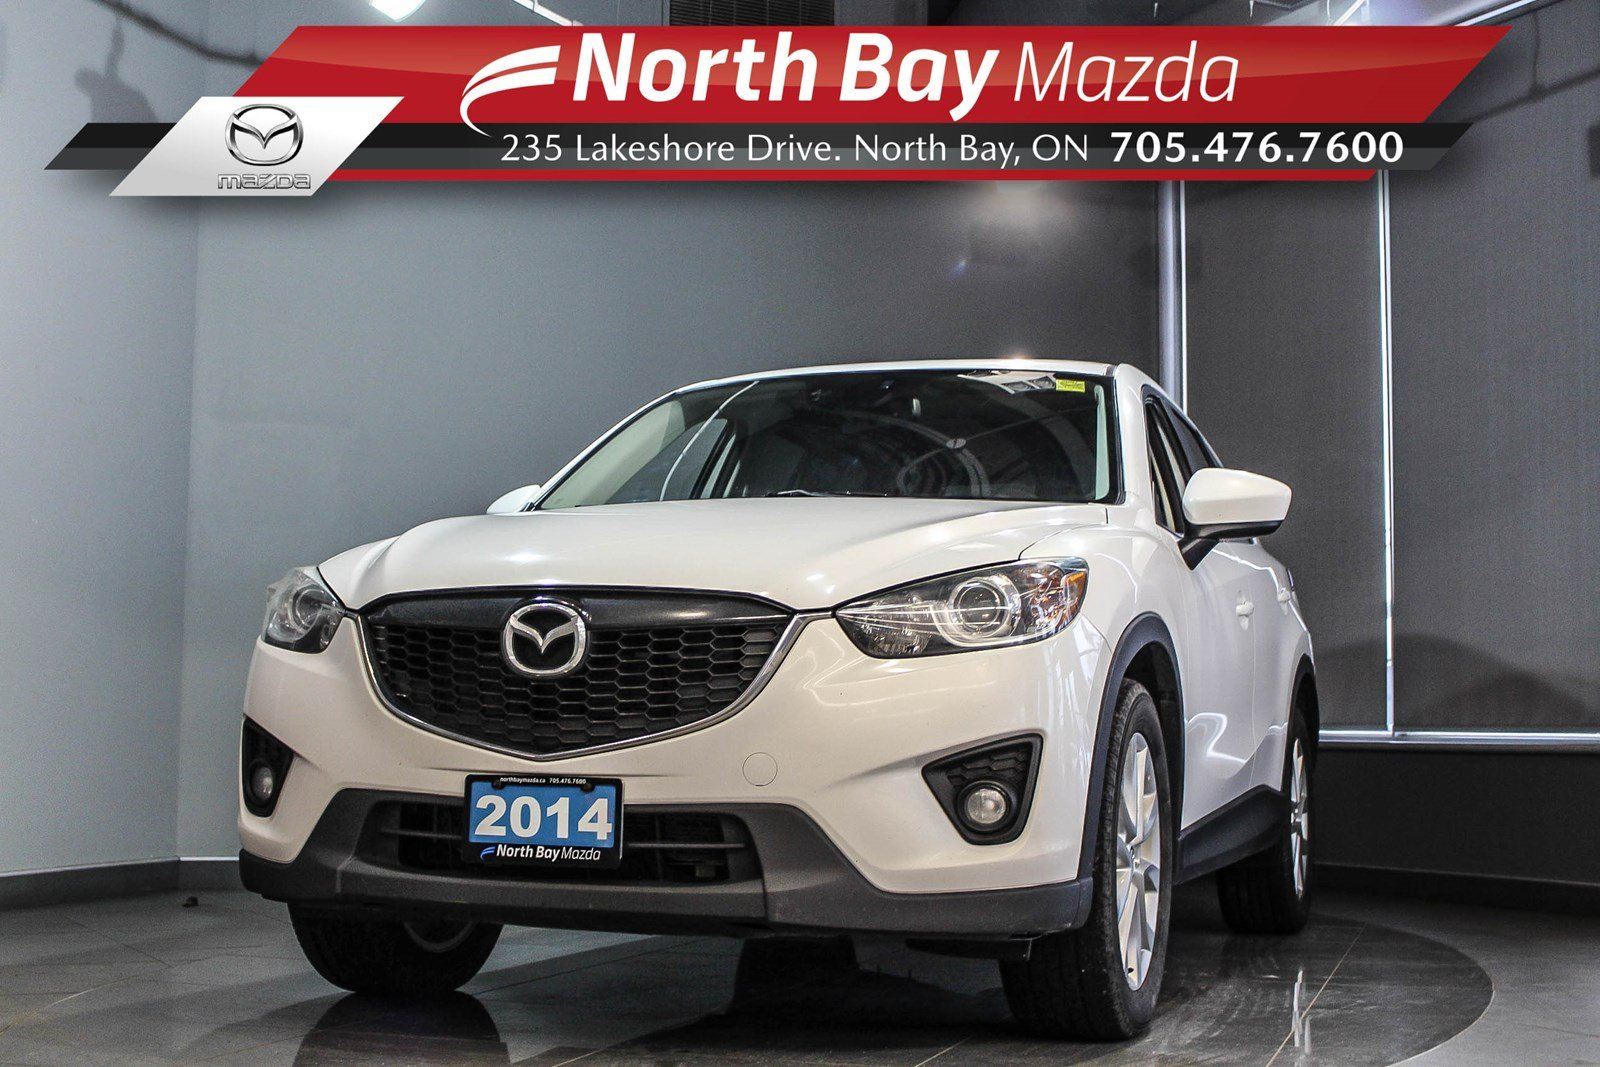 Pre-Owned 2014 Mazda CX-5 GT AWD with Leather, Sunroof, Bluetooth, Cruise